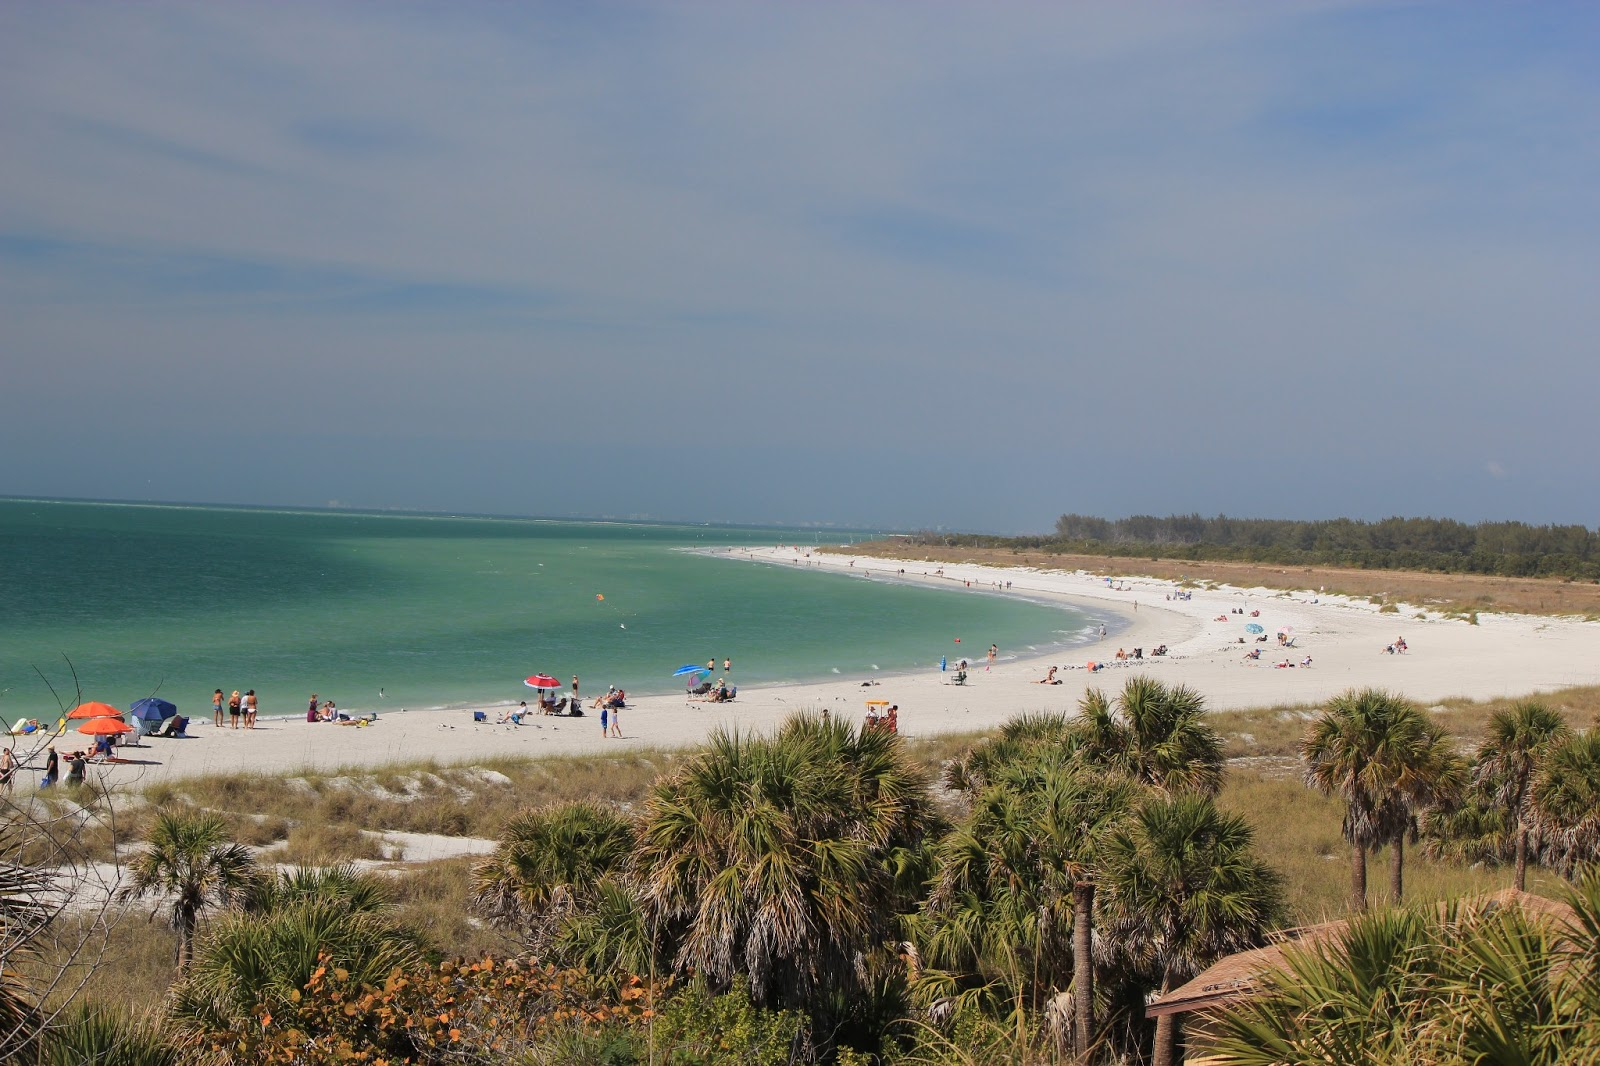 Pinellas county parks fort de soto park pristine beach near the pier at fort de soto nvjuhfo Image collections